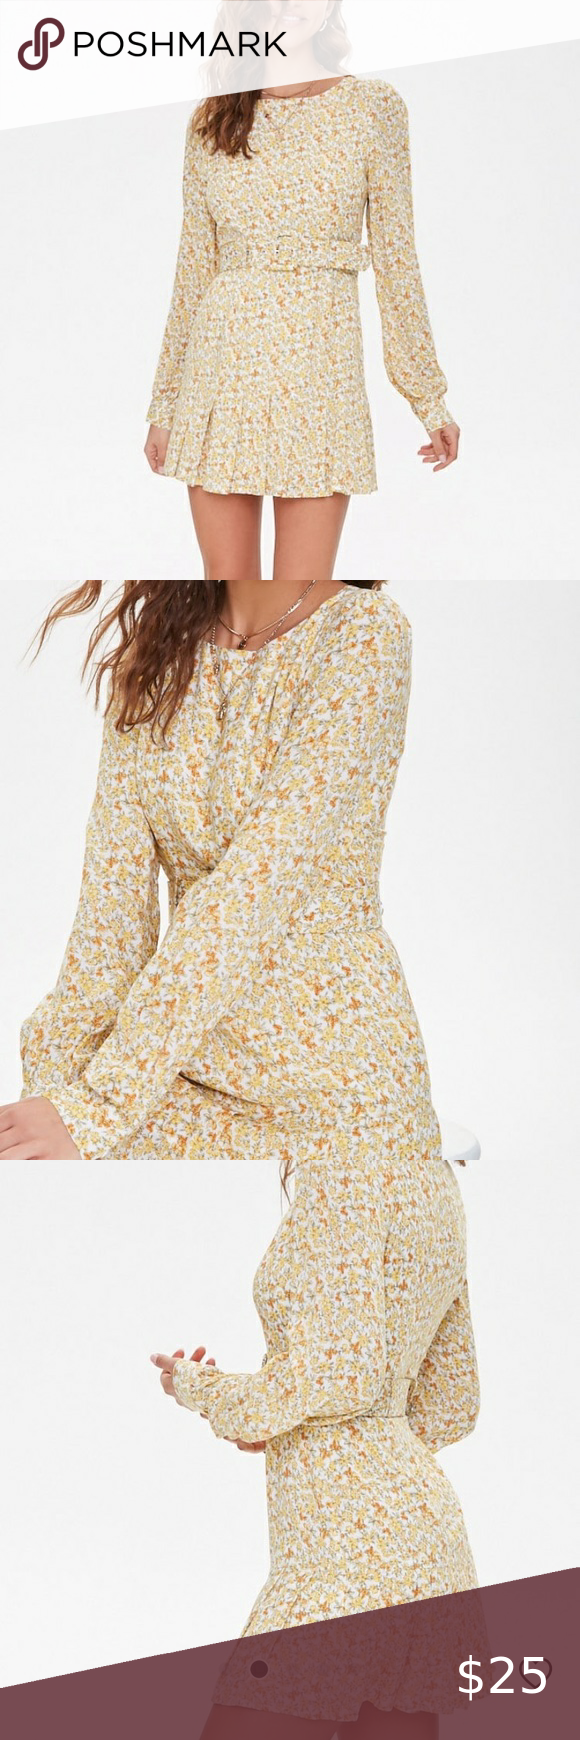 Belted Floral Fit And Flare Dress Fit And Flare Dress Fit And Flare Flare Dress [ 1740 x 580 Pixel ]